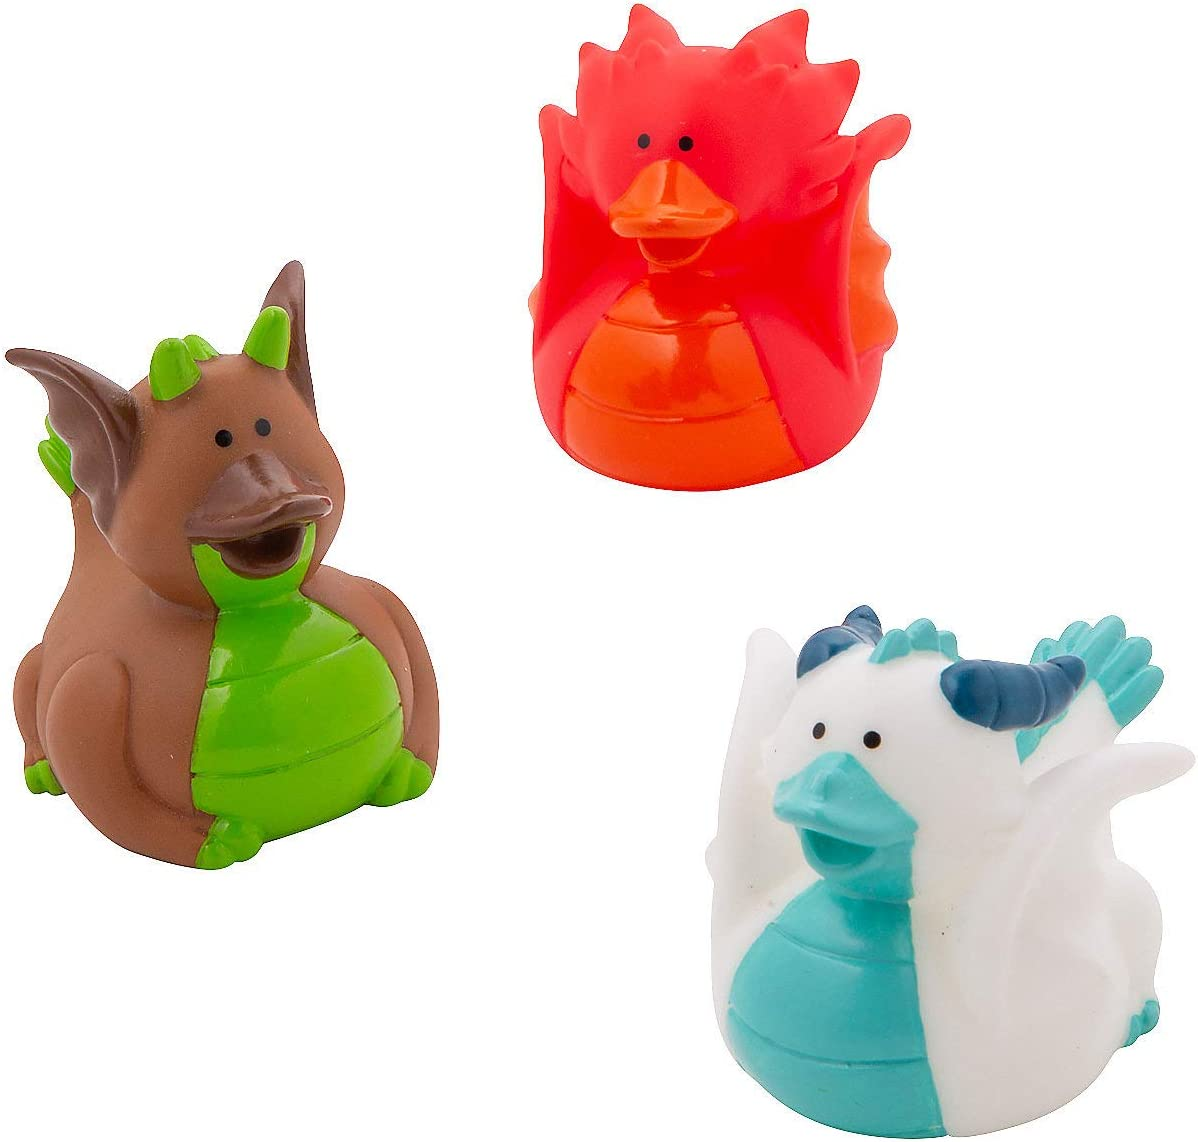 Set of 12 Ducks Fun Express Camping and Scout Rubber Duckies